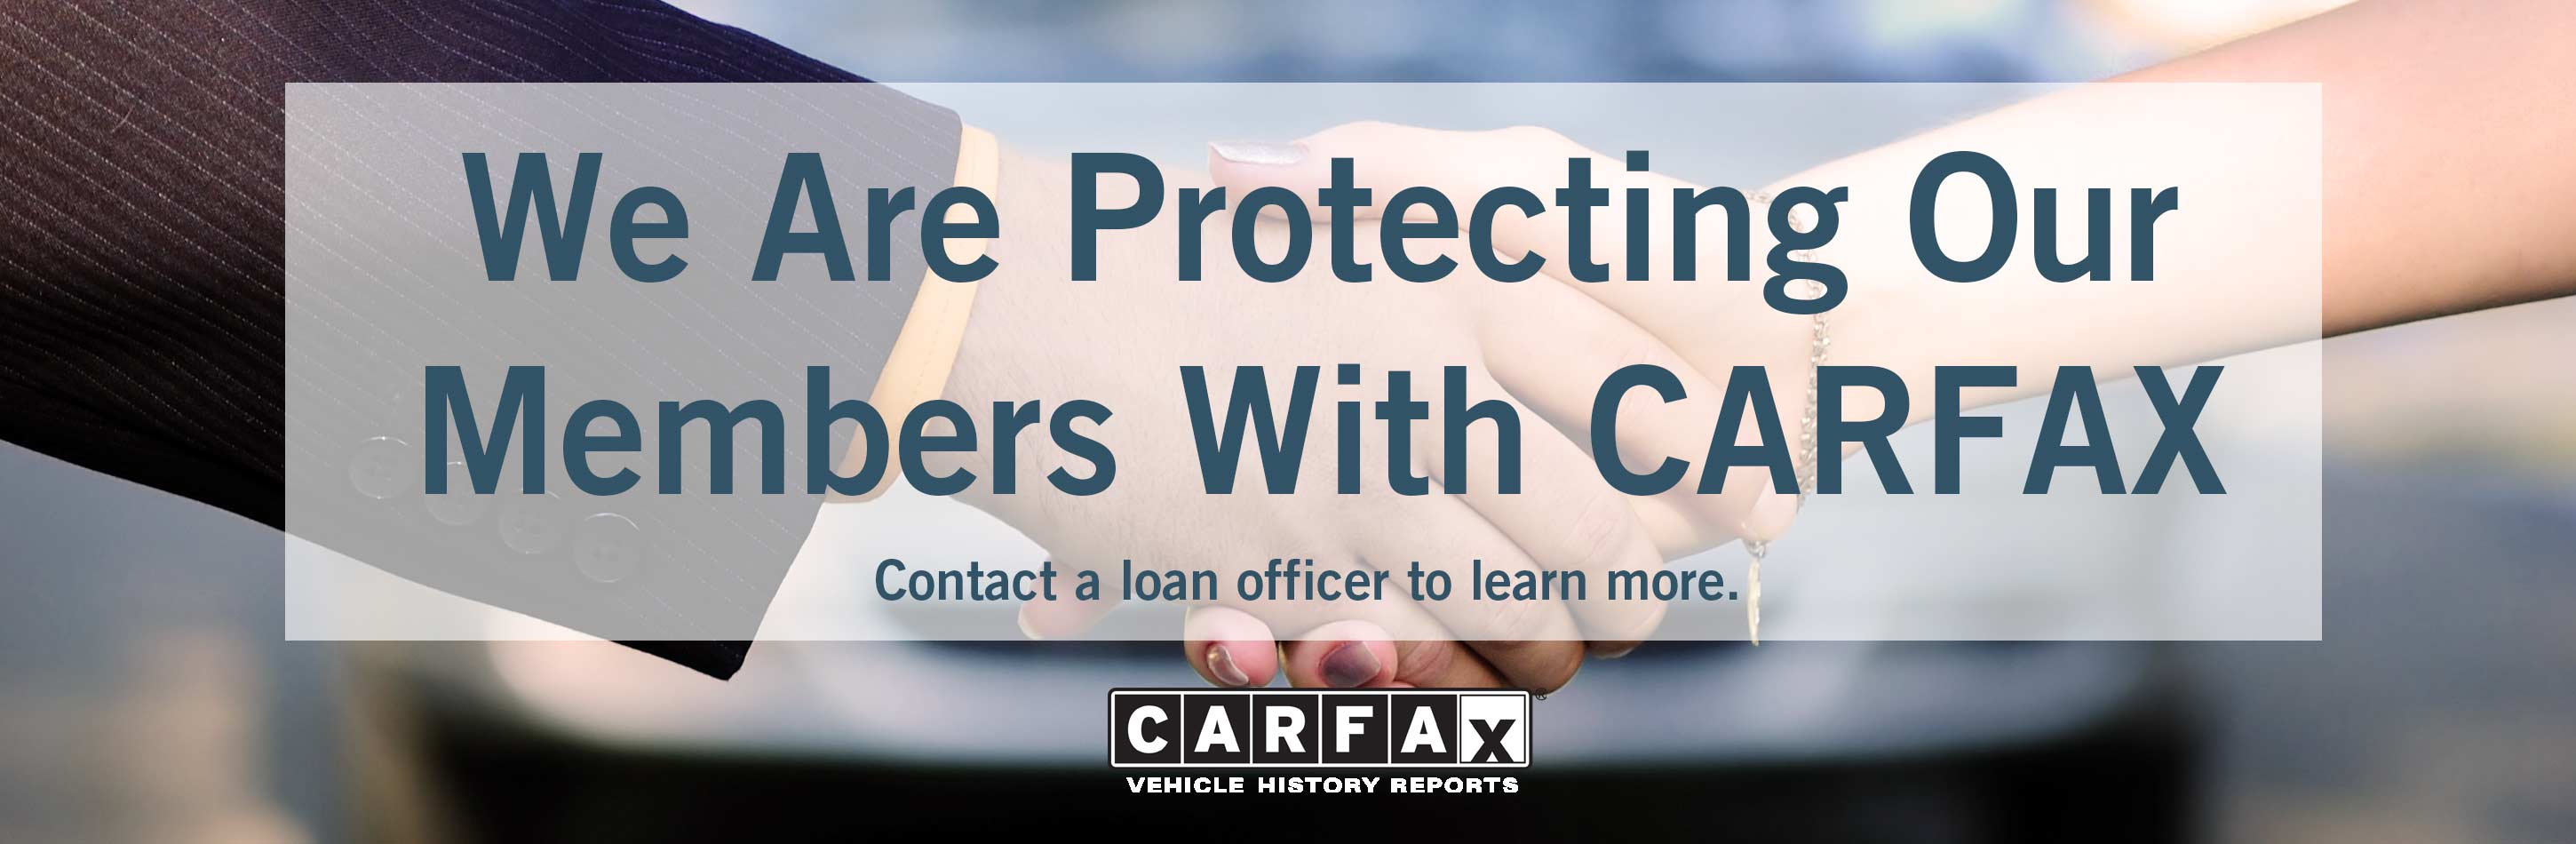 We are protecting our members with Carfax. Contact a loan officer to learn more.